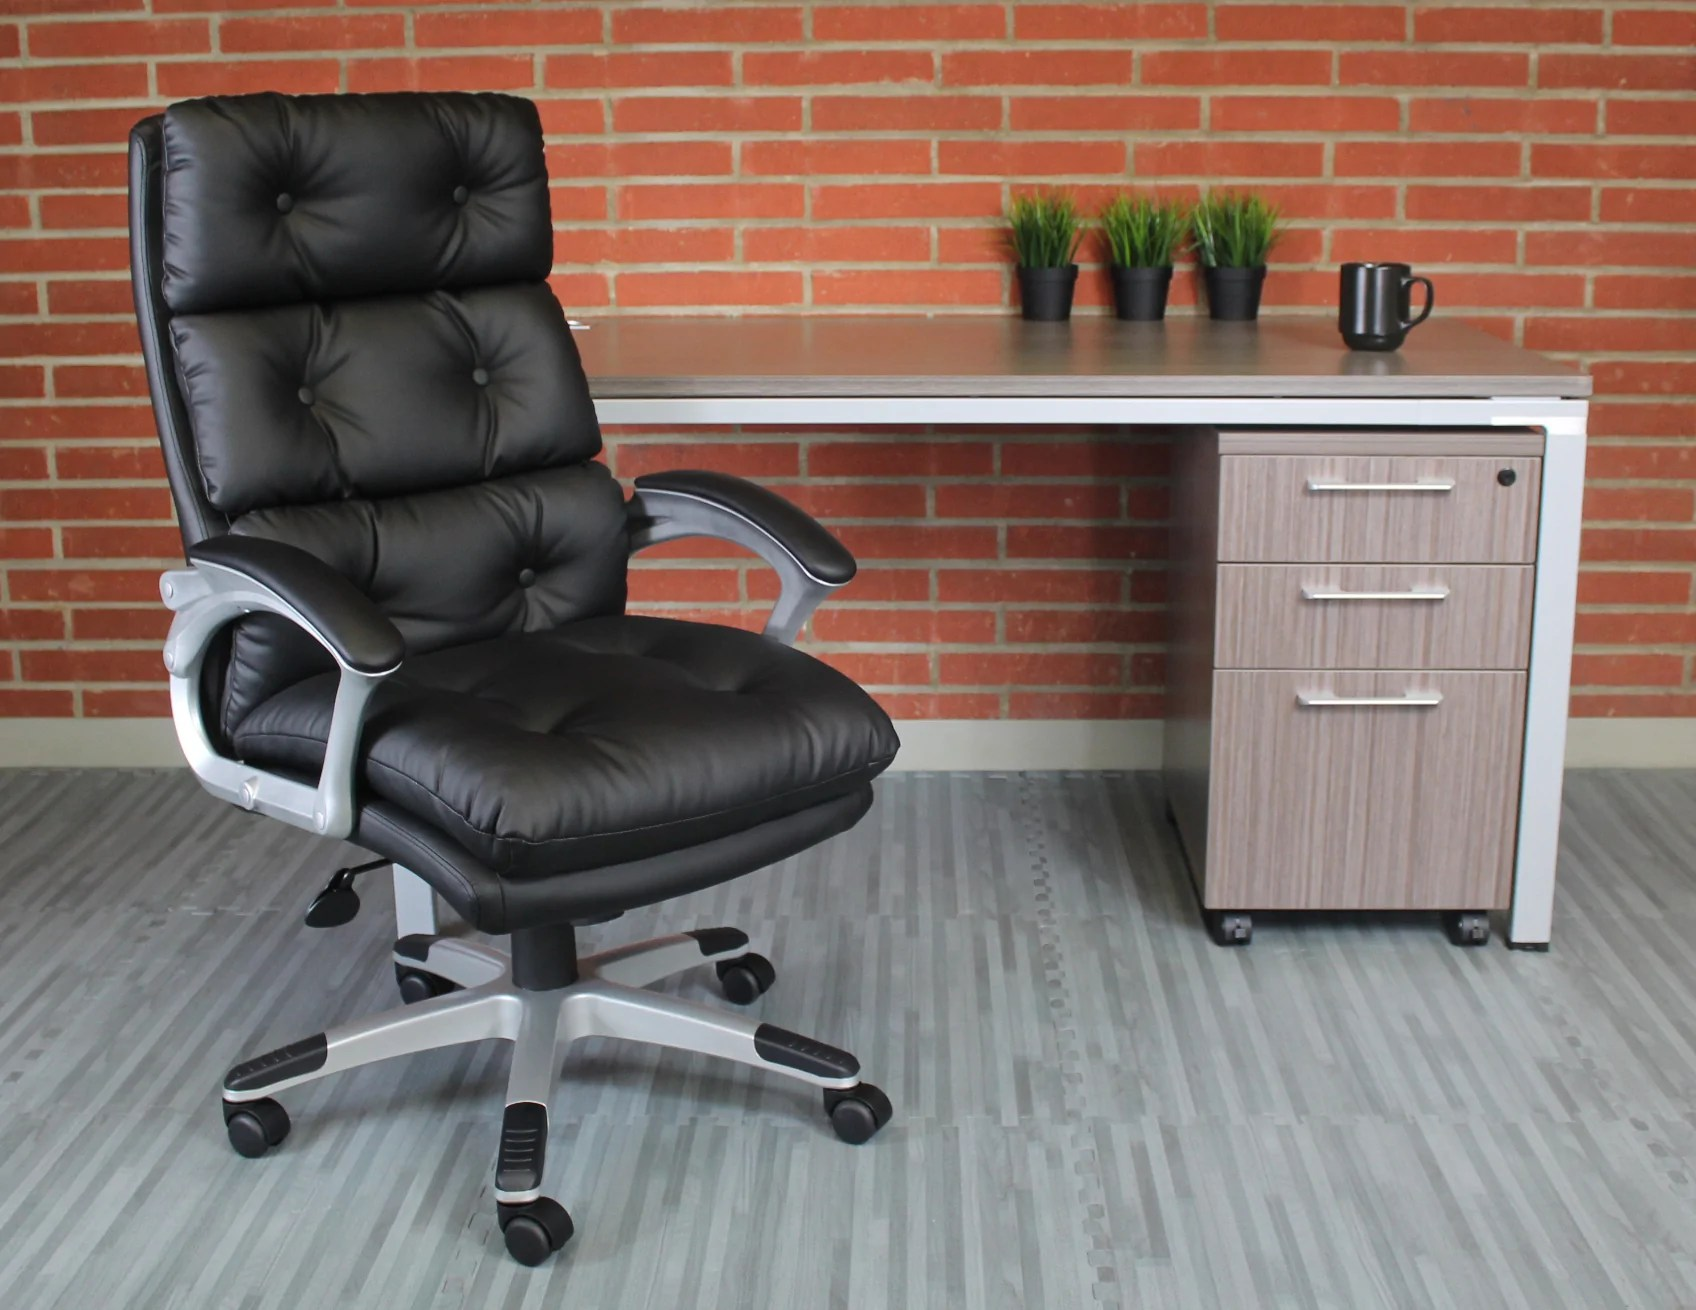 Tufted Leather Office Chair Black Faux Leather Executive Office Chair W Button Tufted Design